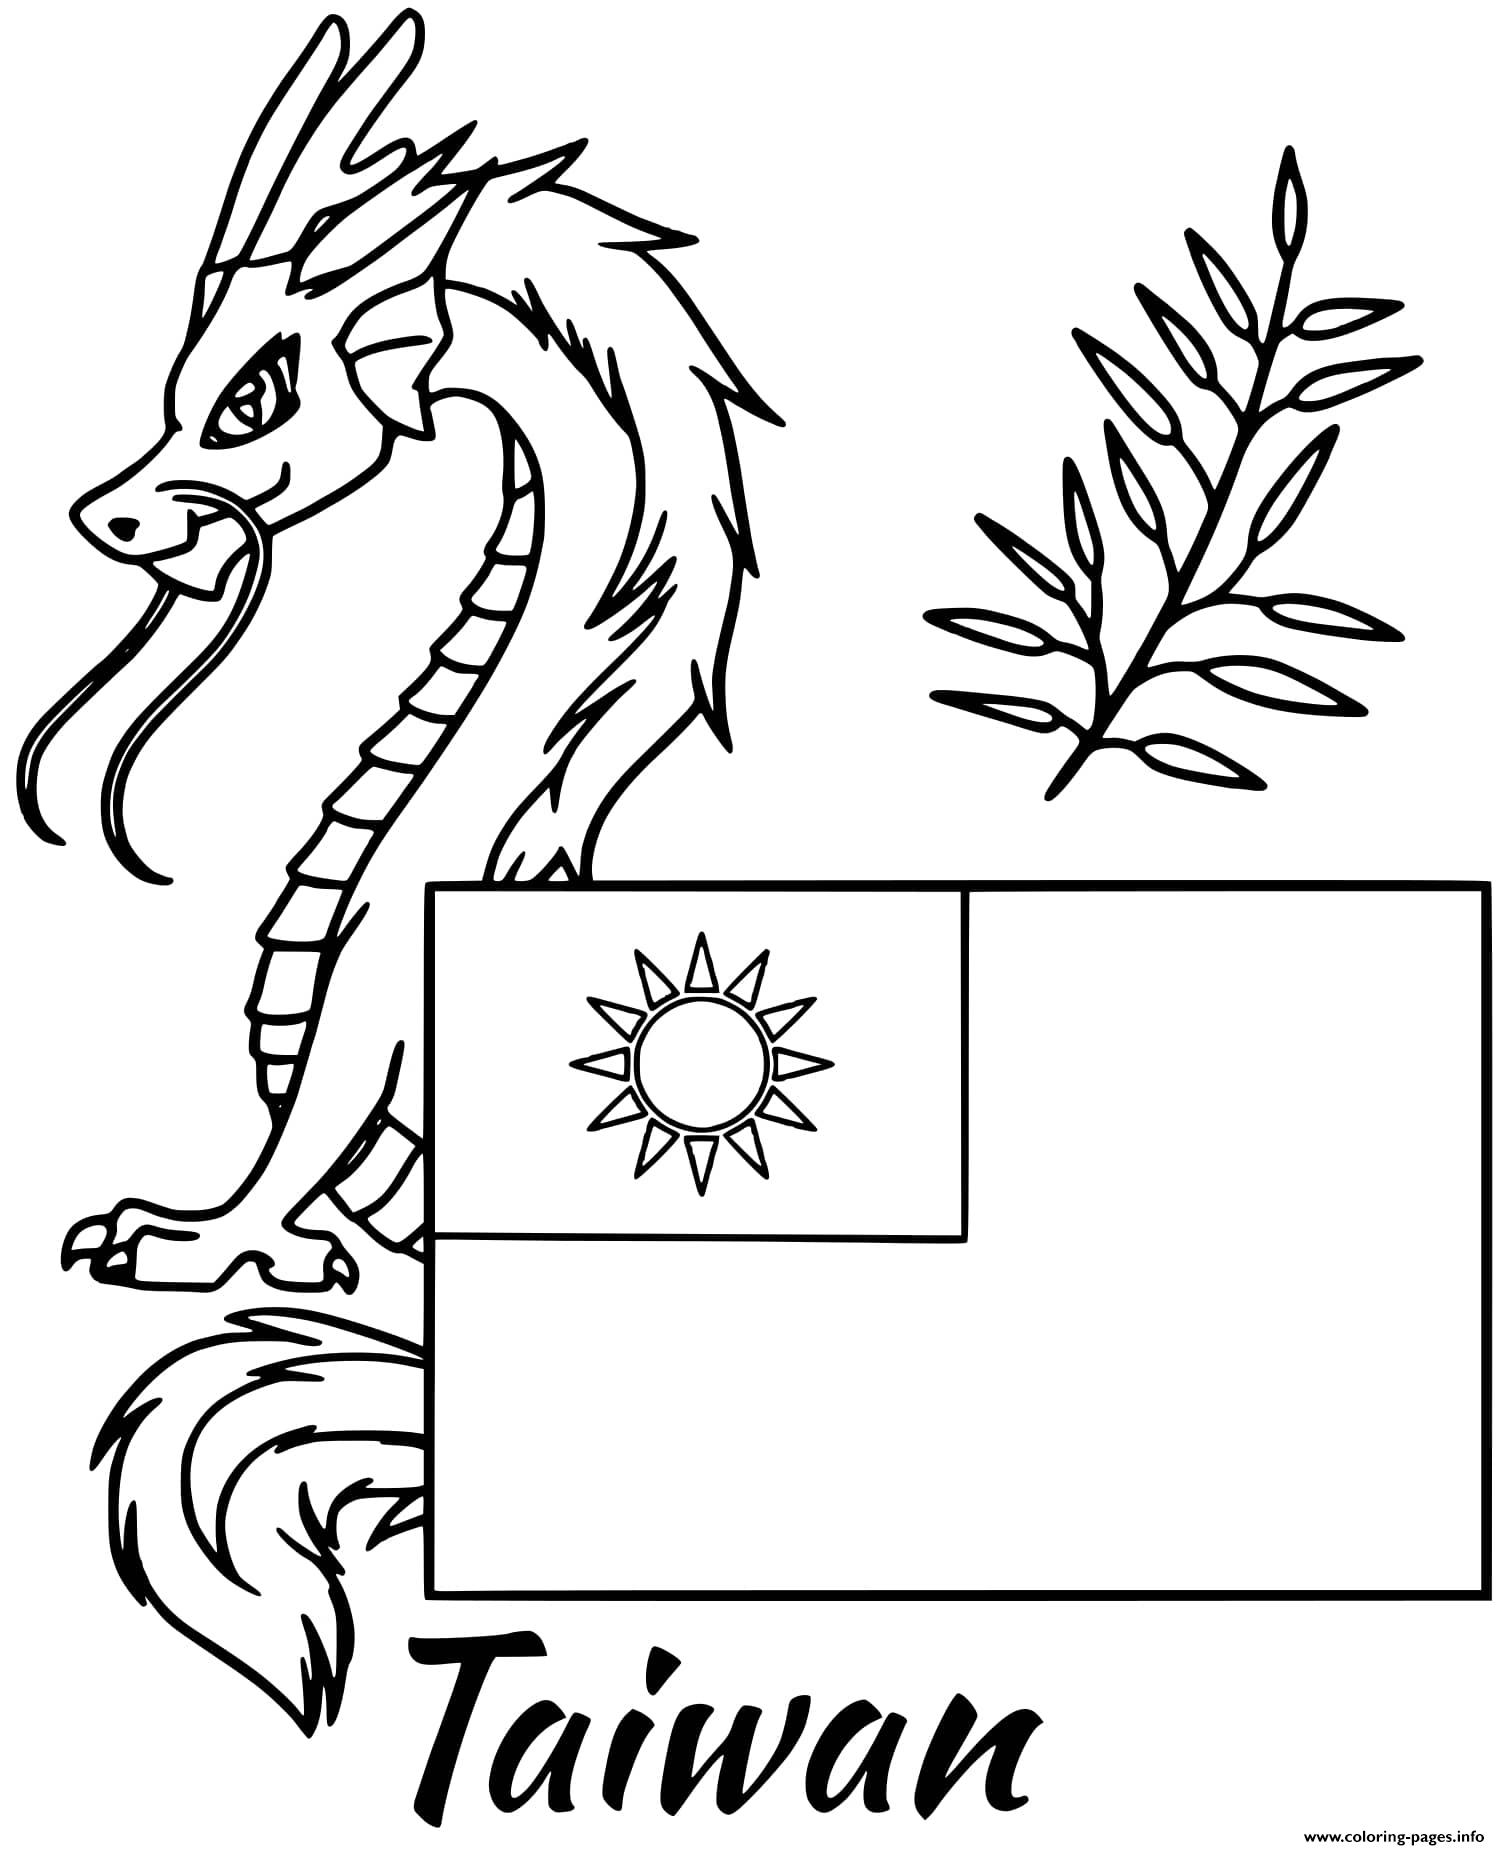 Taiwan Flag Dragon coloring pages